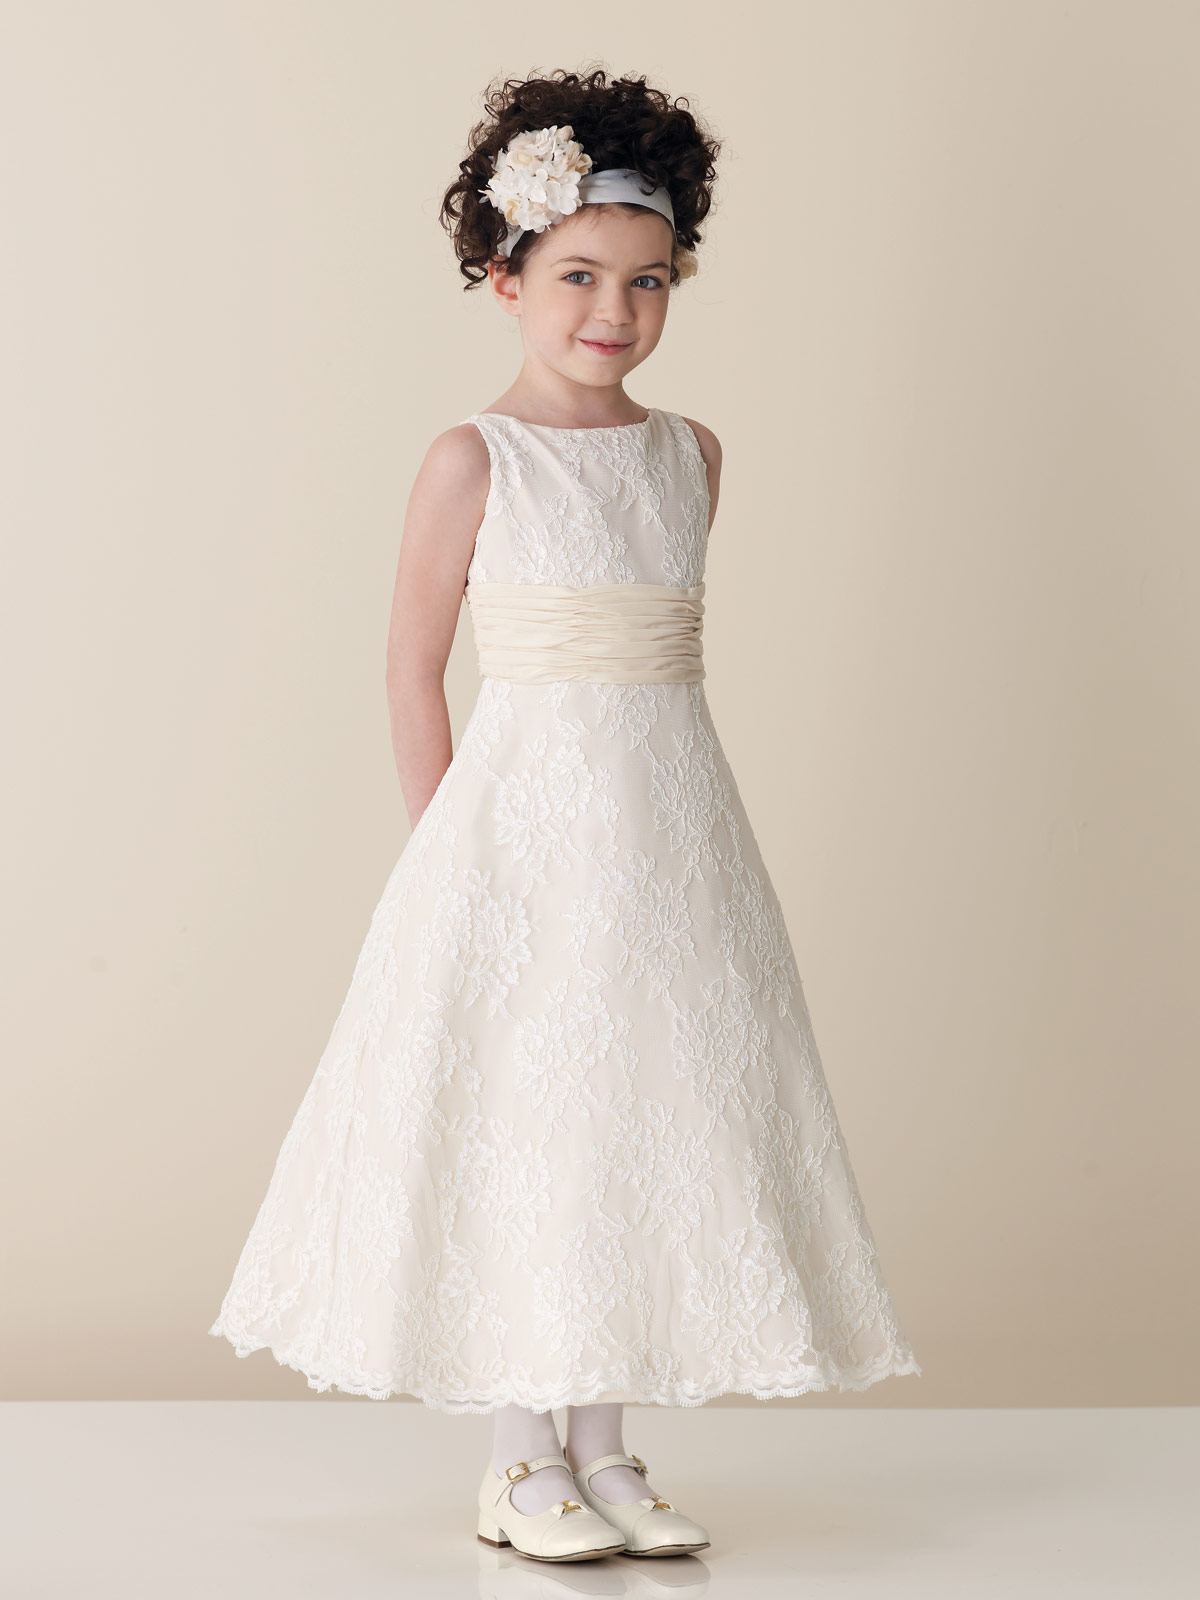 free wedding kids wedding dresses